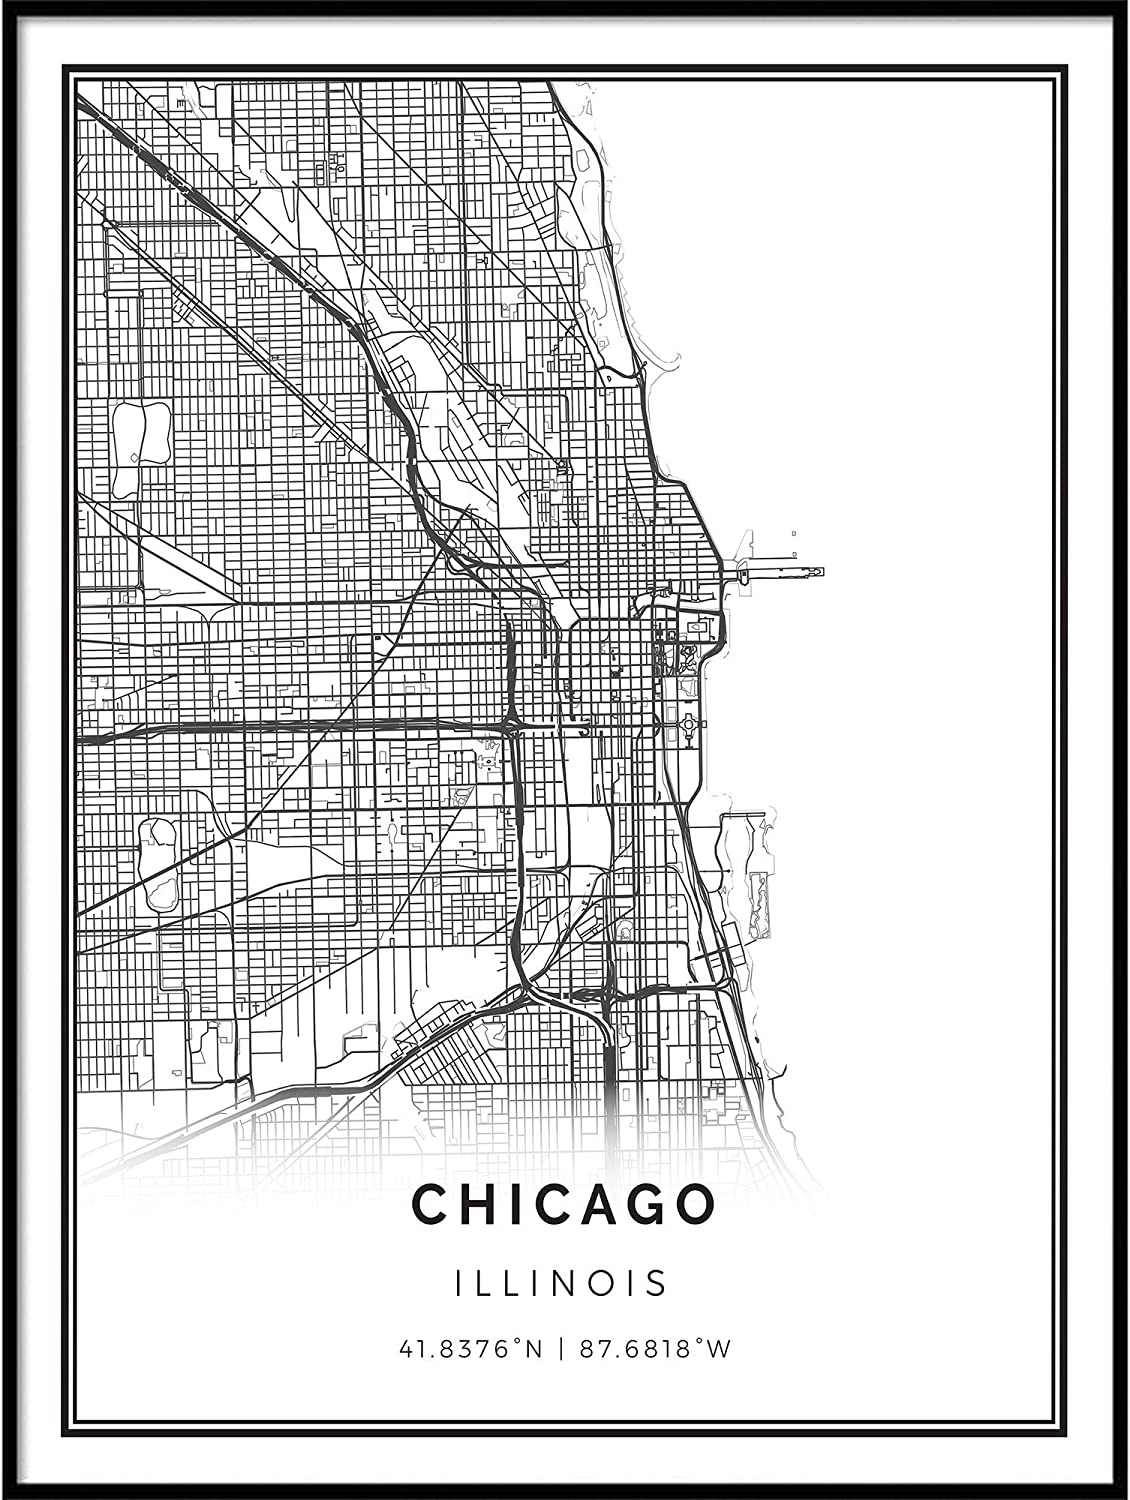 Squareious Chicago map Poster Print | Modern Black and White Wall Art | Scandinavian Home Decor | Illinois City Prints Artwork | Fine Art Posters 24x36